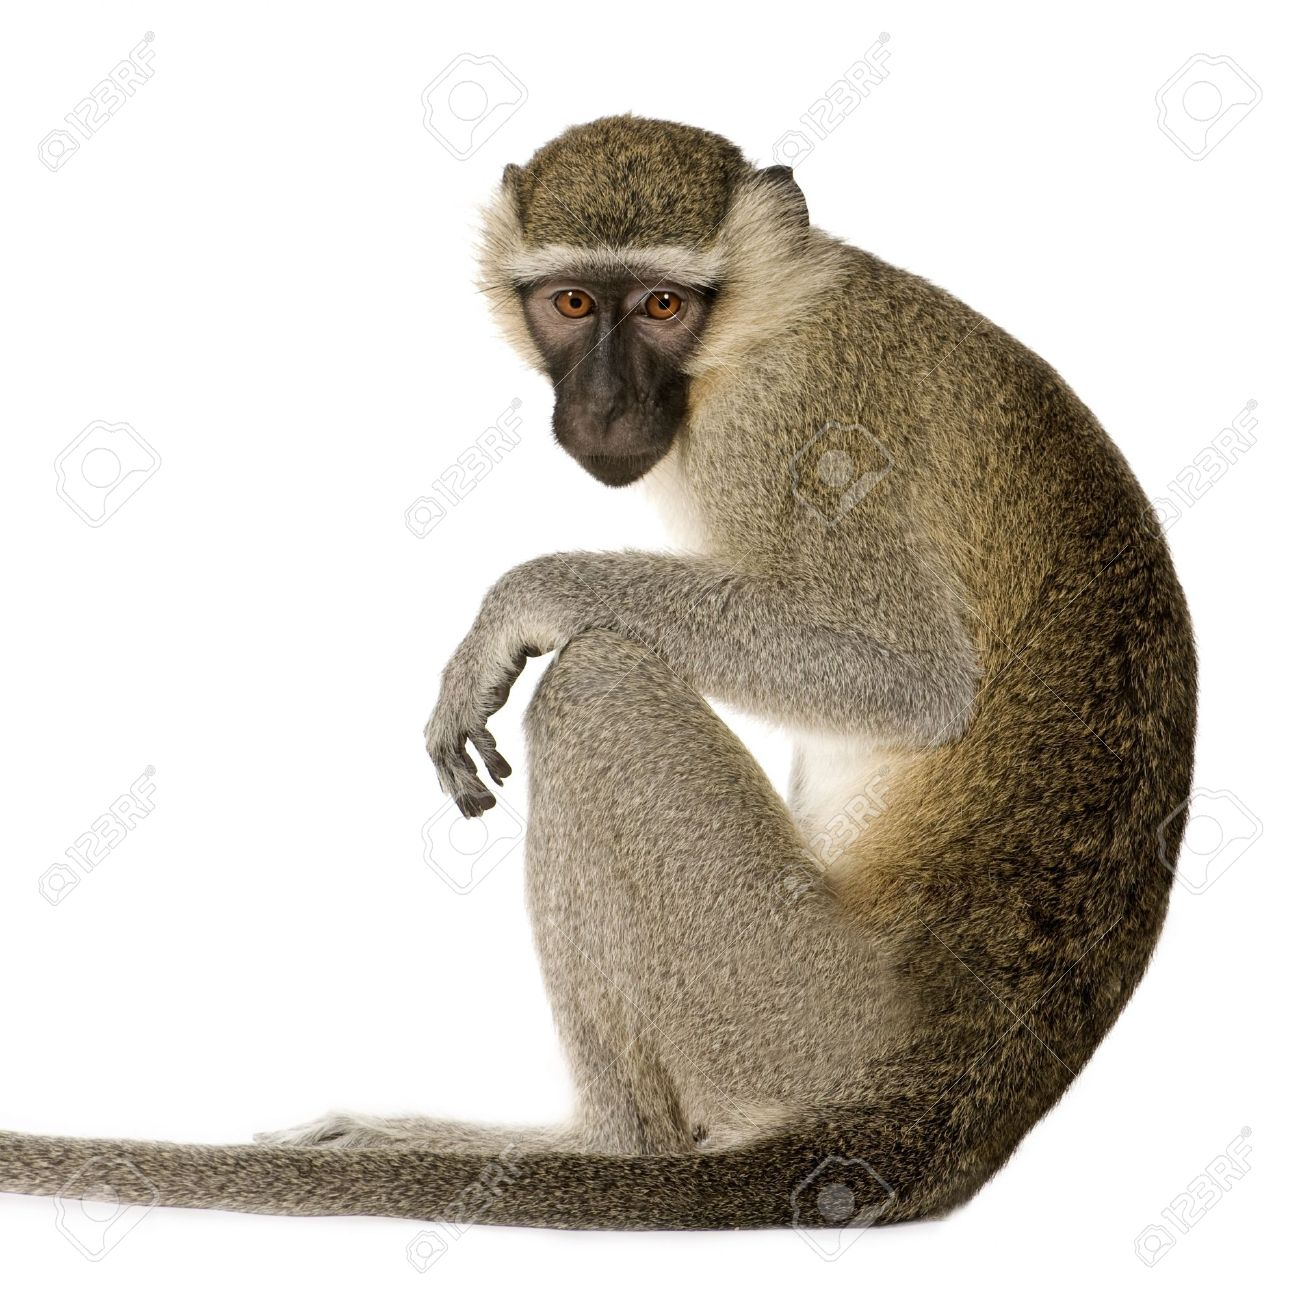 Monkey Pictures - Kids Search Pictures Search